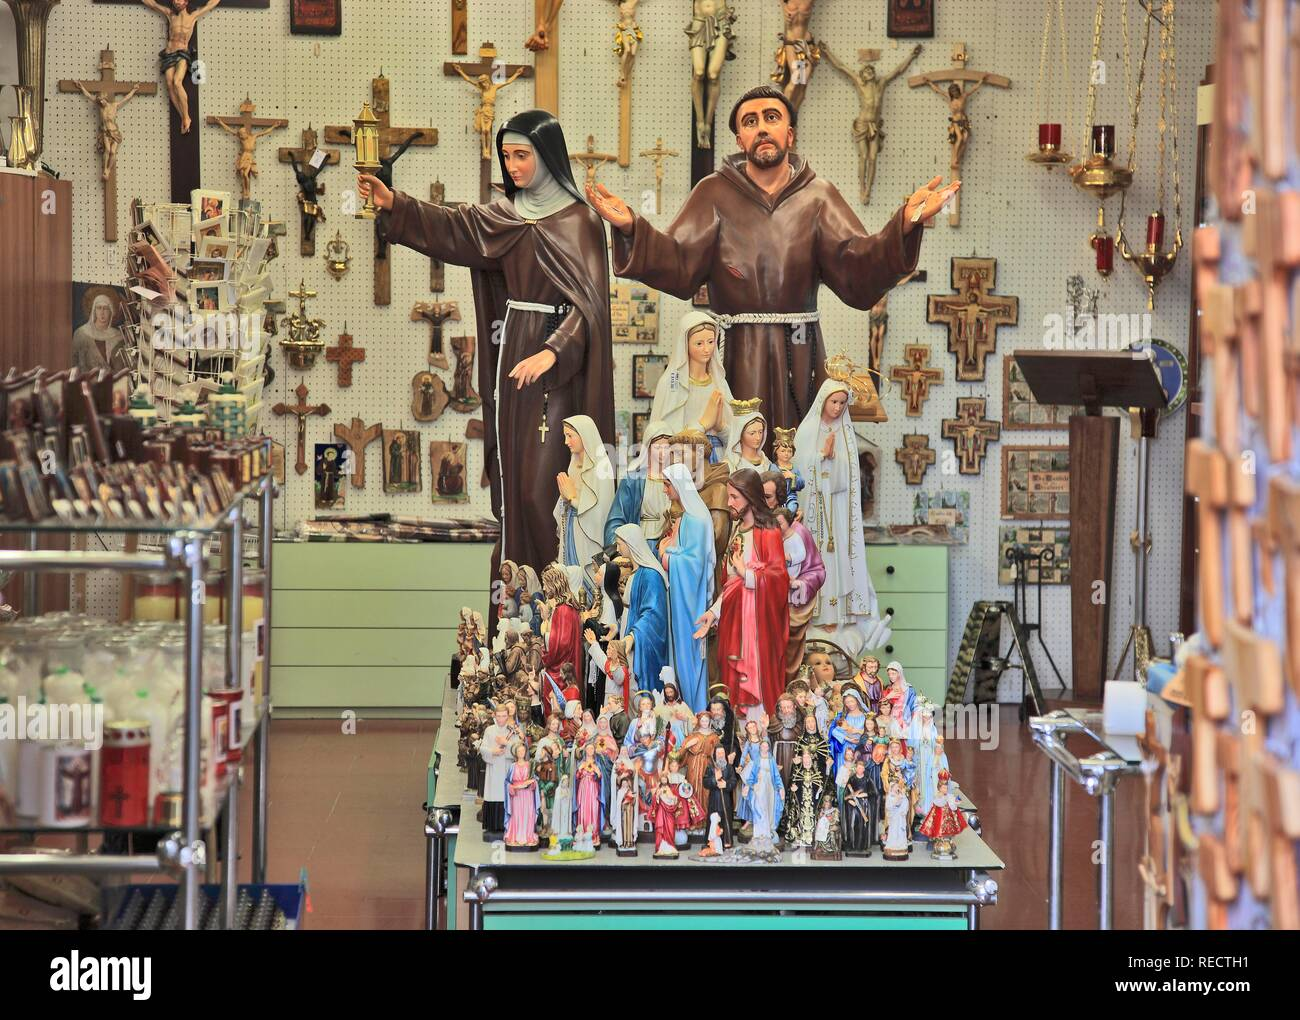 Shop for devotional objects in the historic town of Assisi, Umbria, Italy, Europe - Stock Image